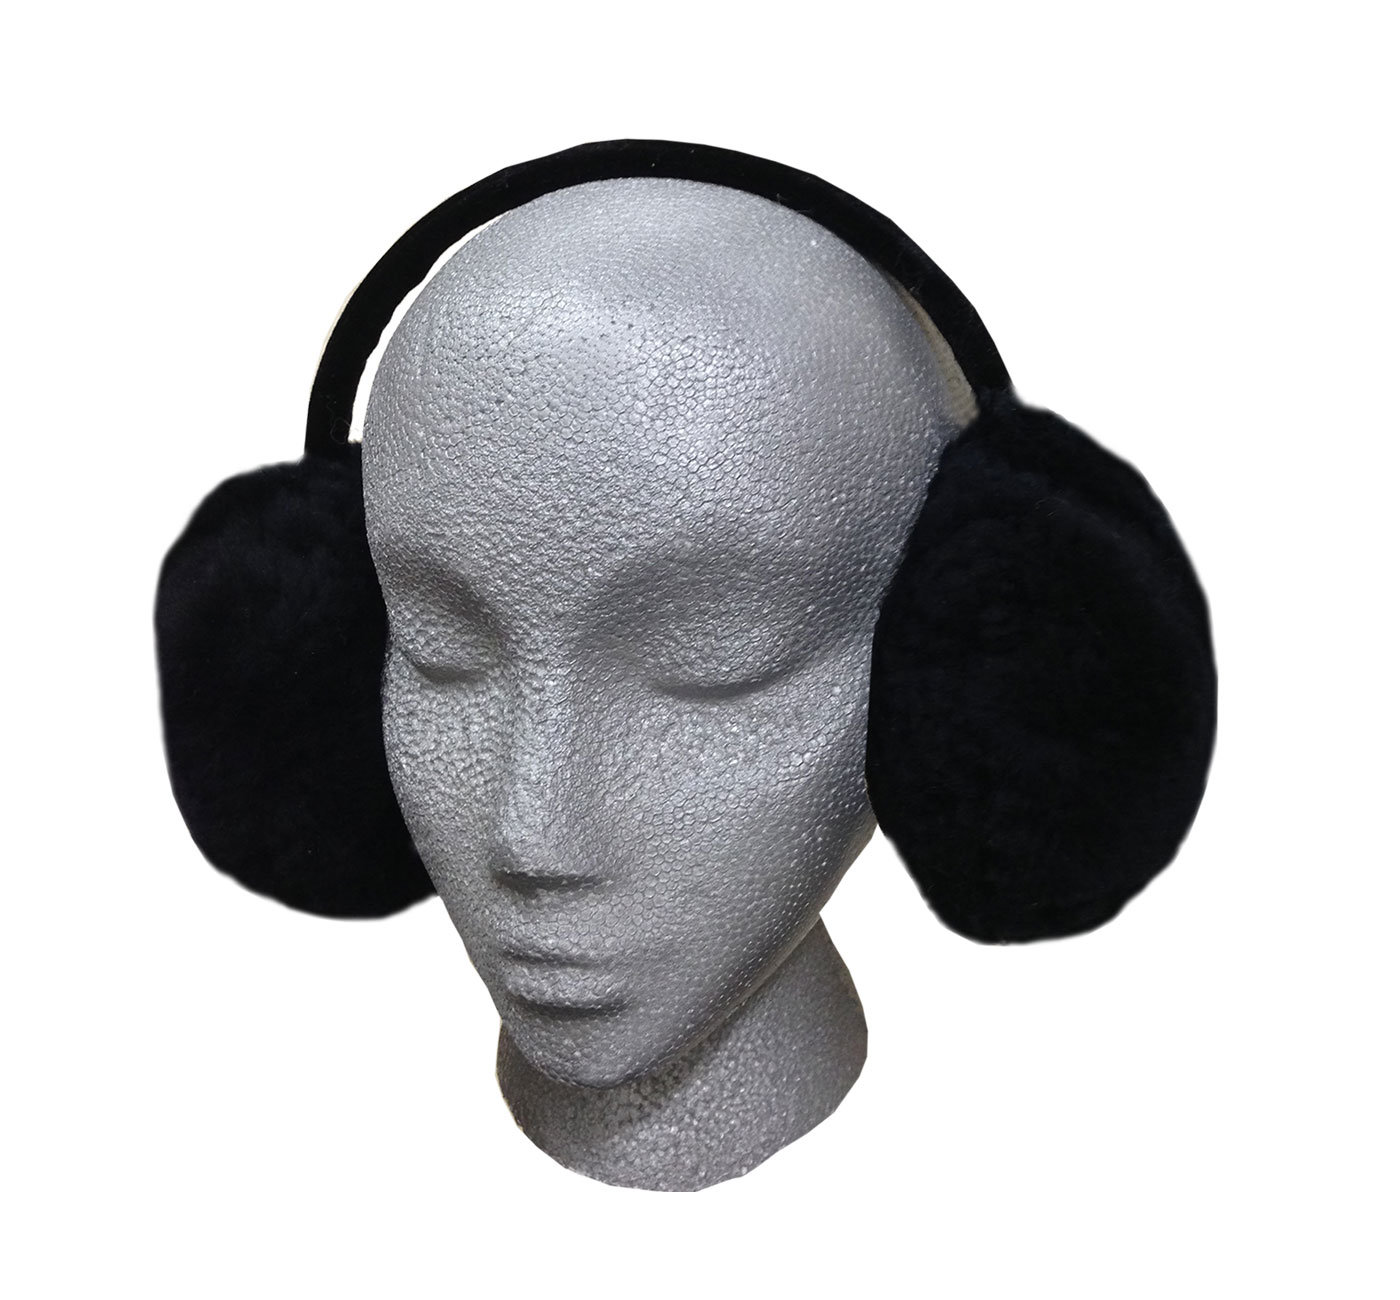 Sheepskin Earmuffs Black